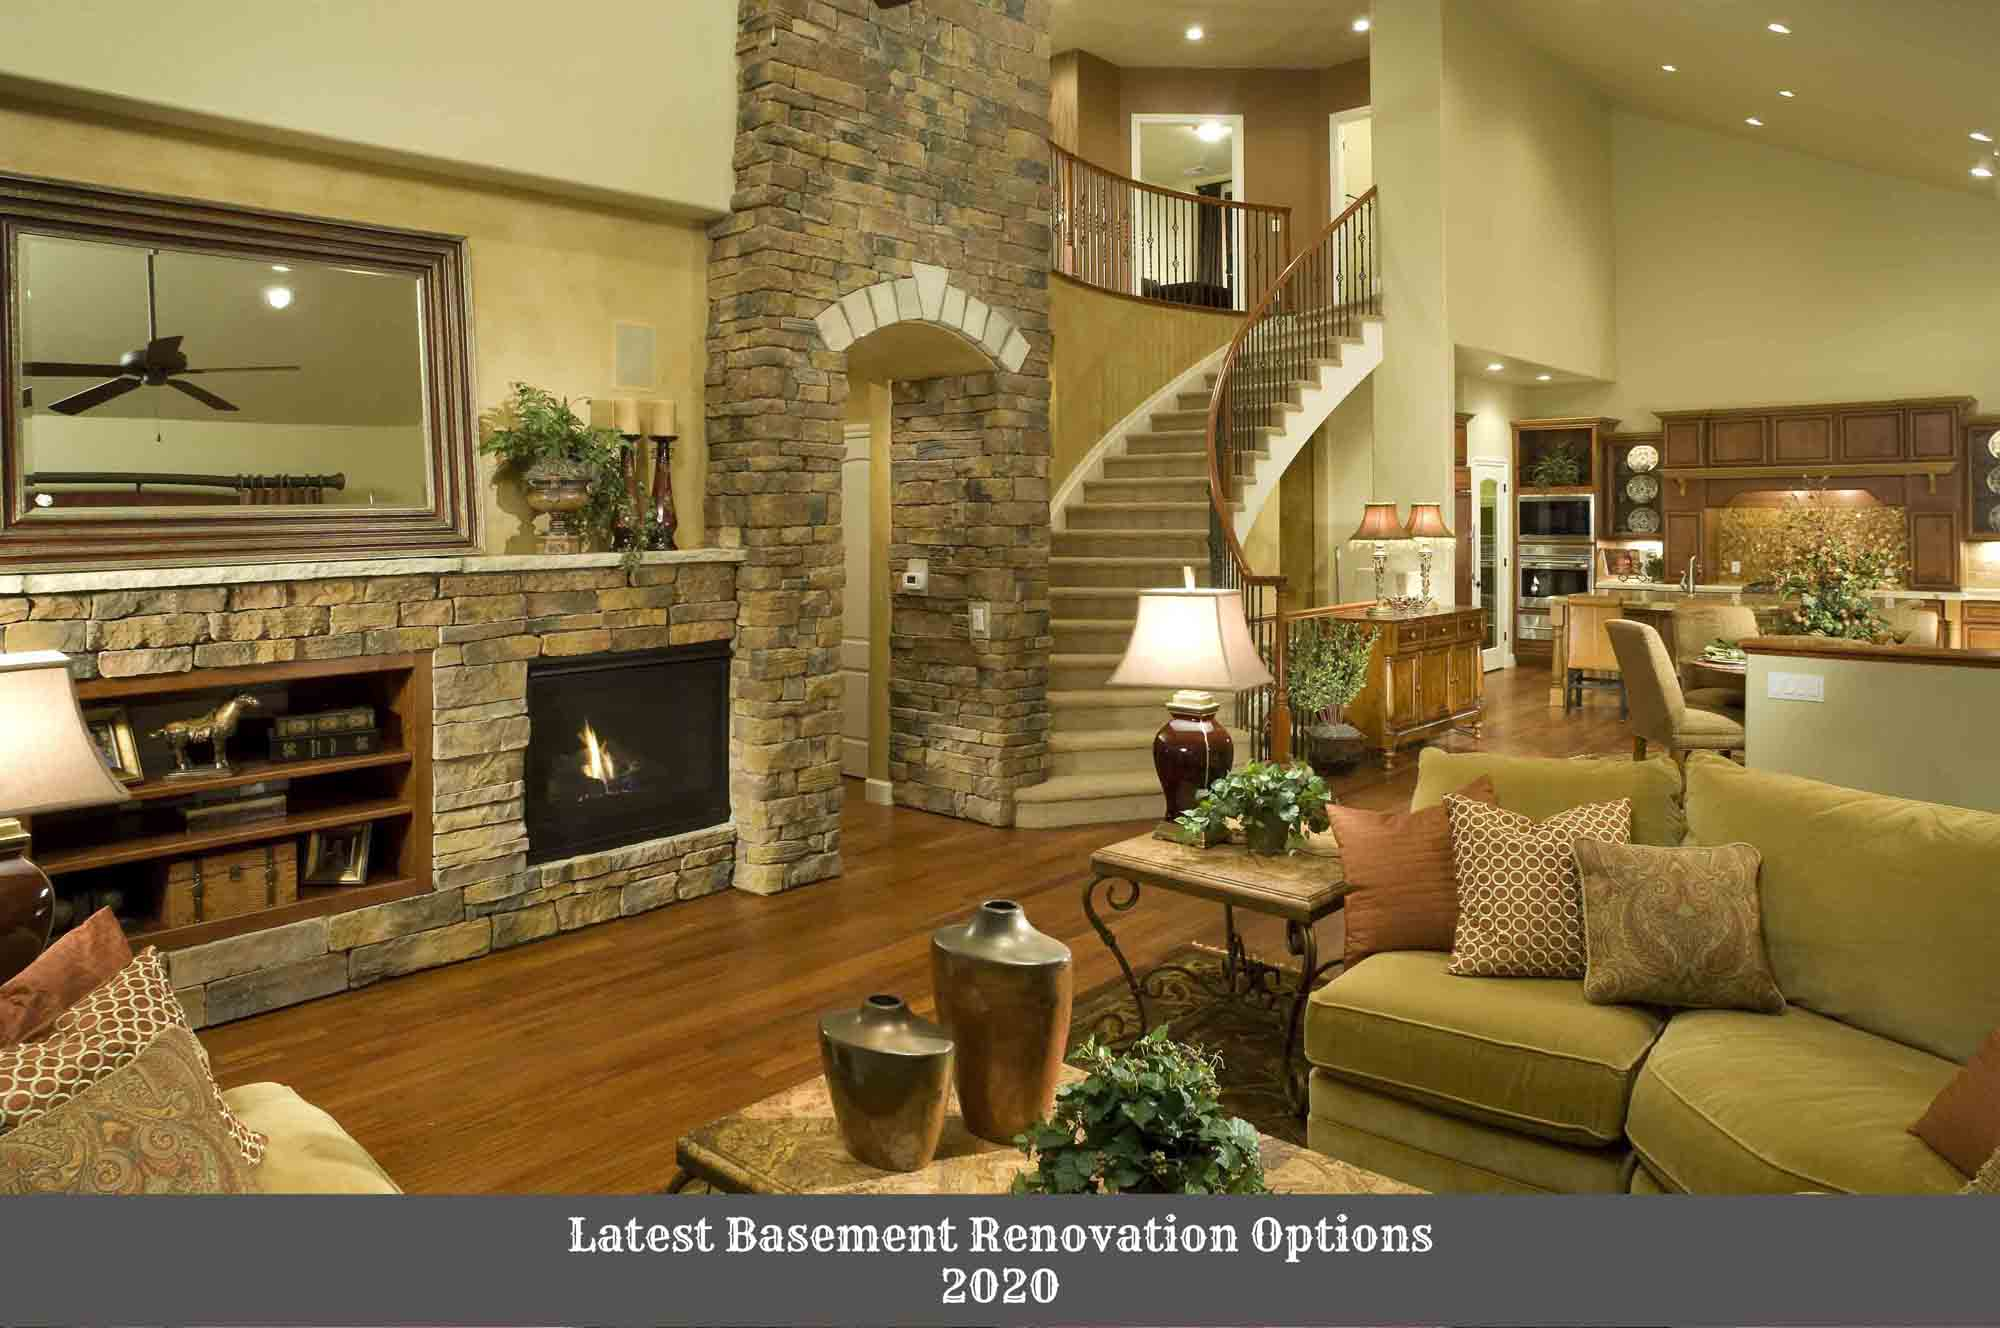 Basement Renovation Options And Tips For Summer 2020